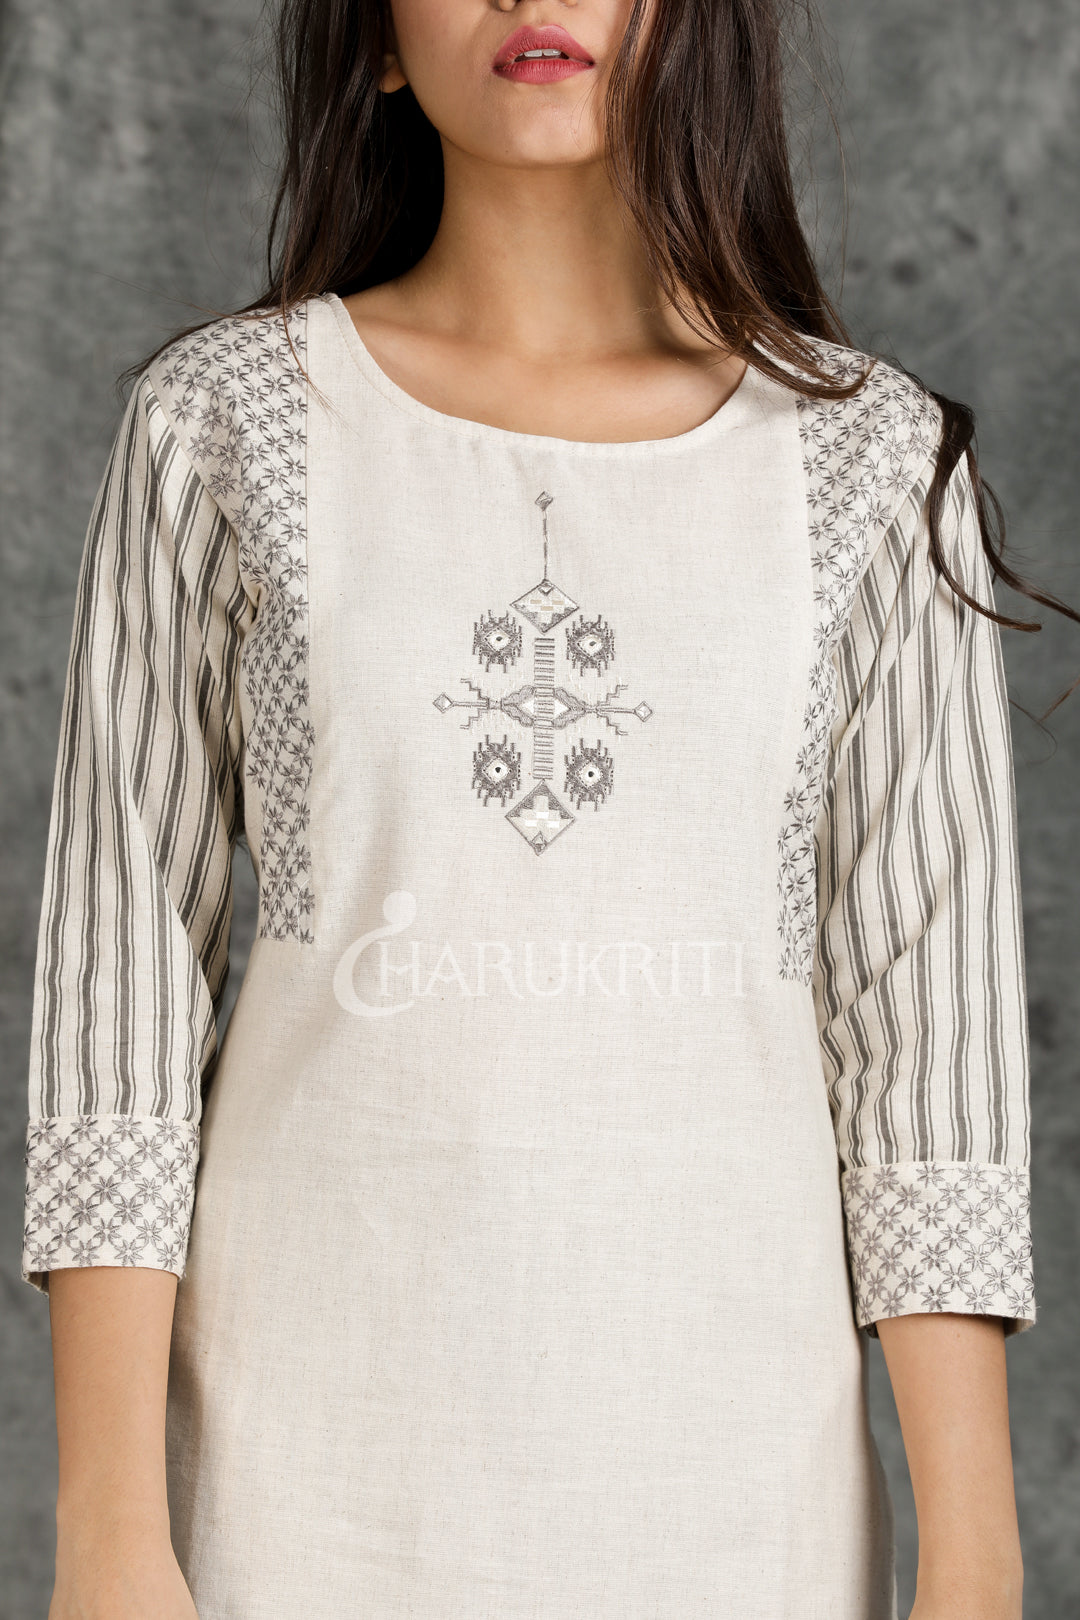 White Resham Embroidered Kurti With Grey & White Stripped Palazzo - Charukriti